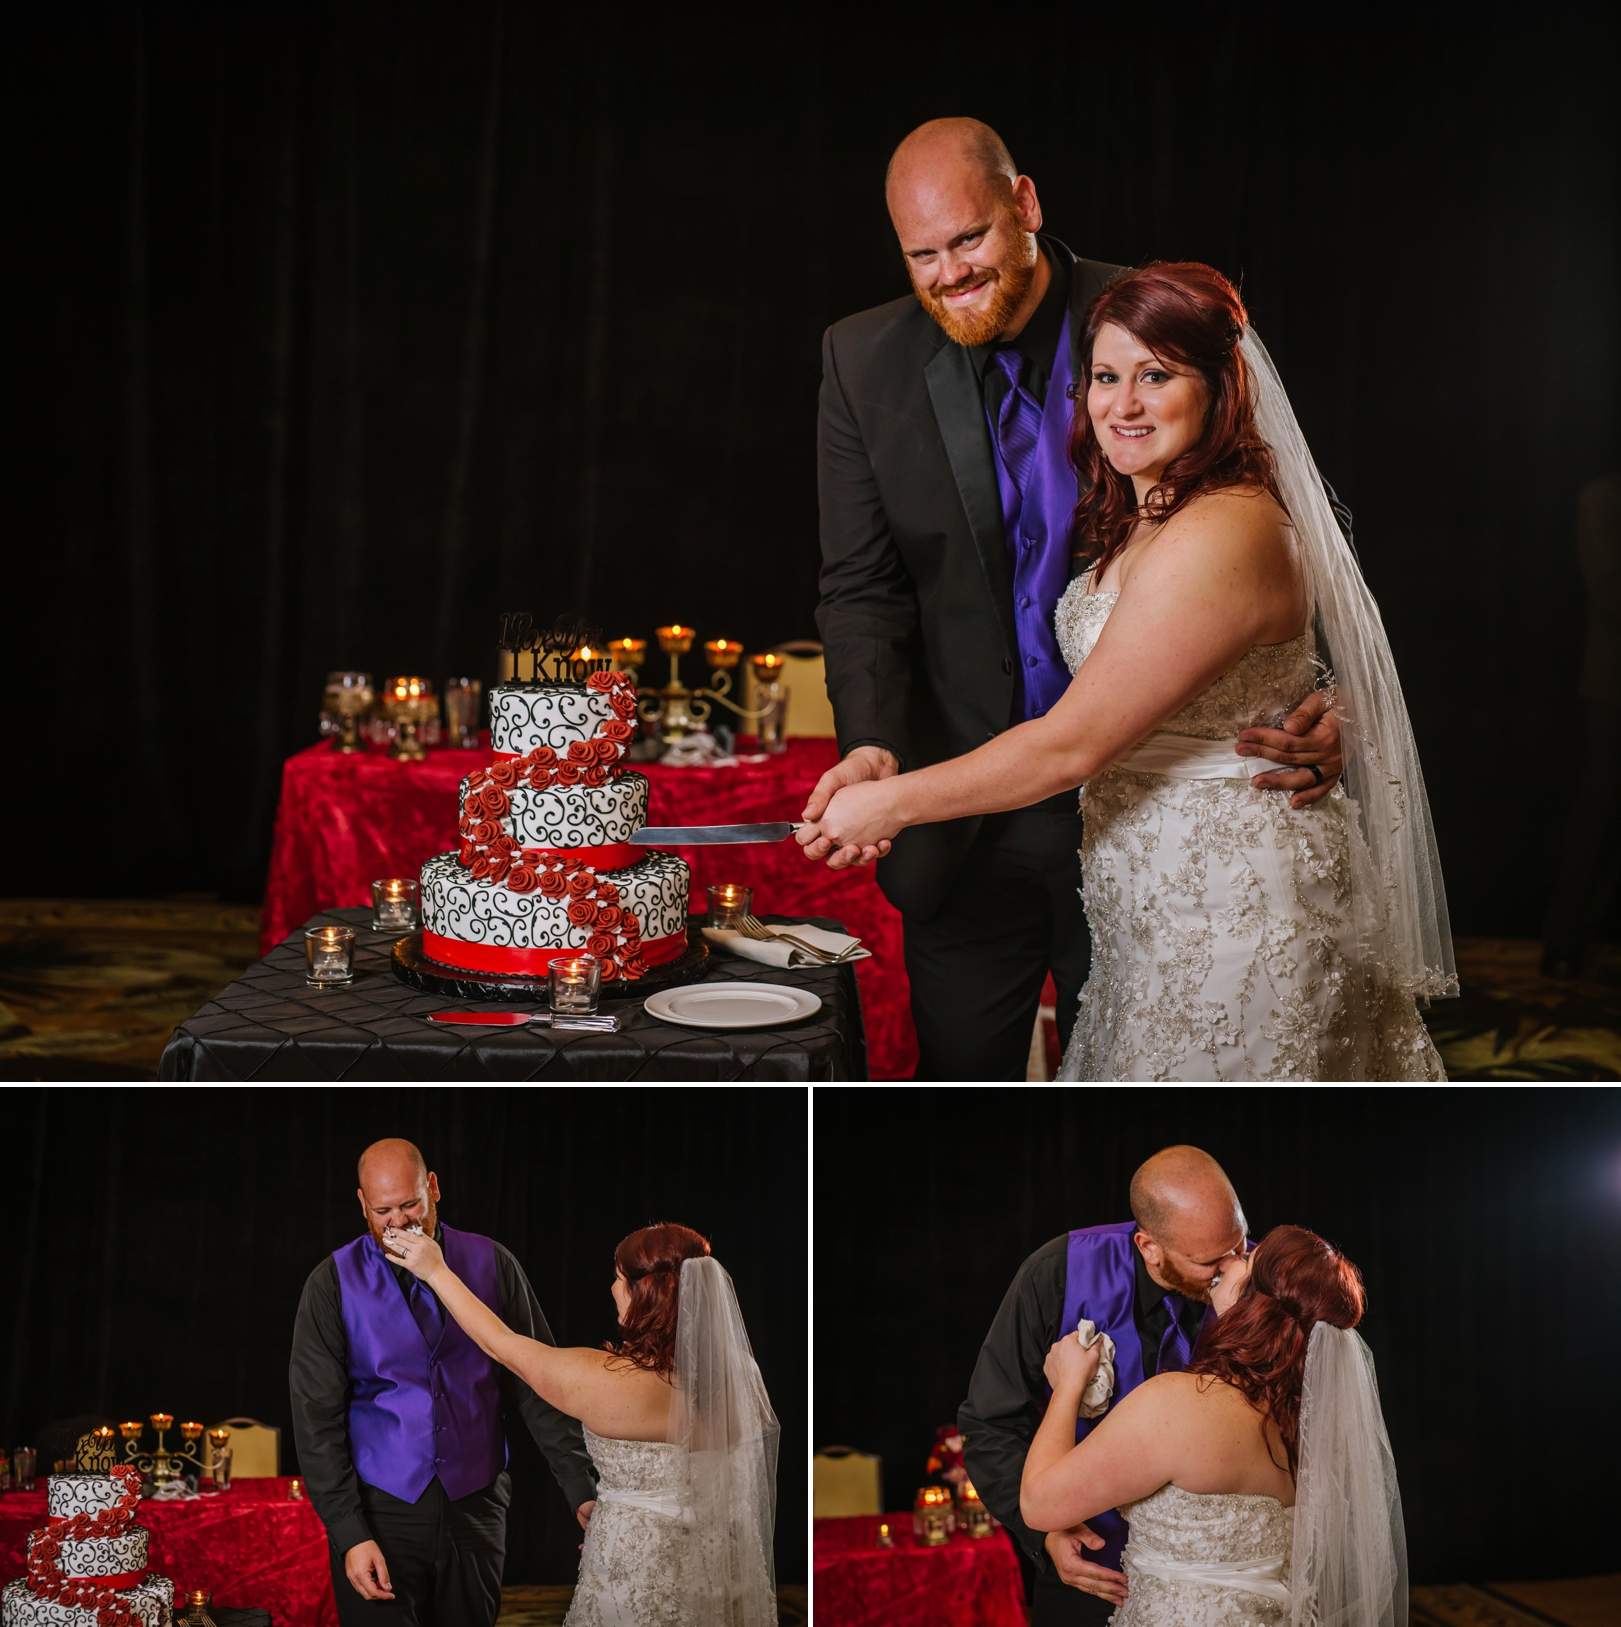 clearwater-beach-hyatt-masquerade-ballroom-themed-wedding-photograpy_0028.jpg